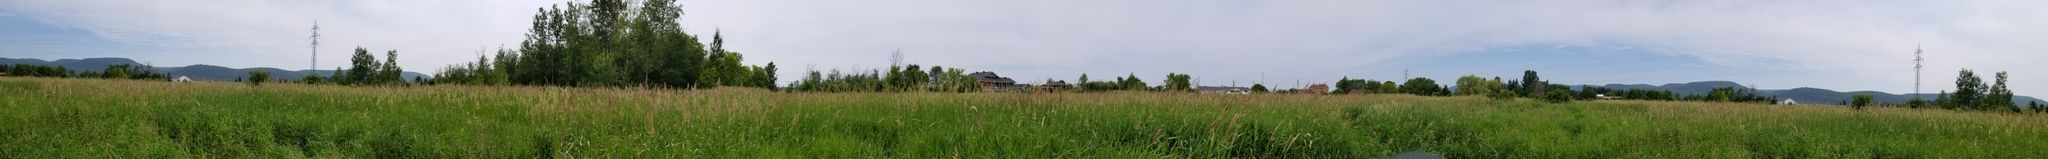 Panoramic view of a field with the Gatineau hills in the background